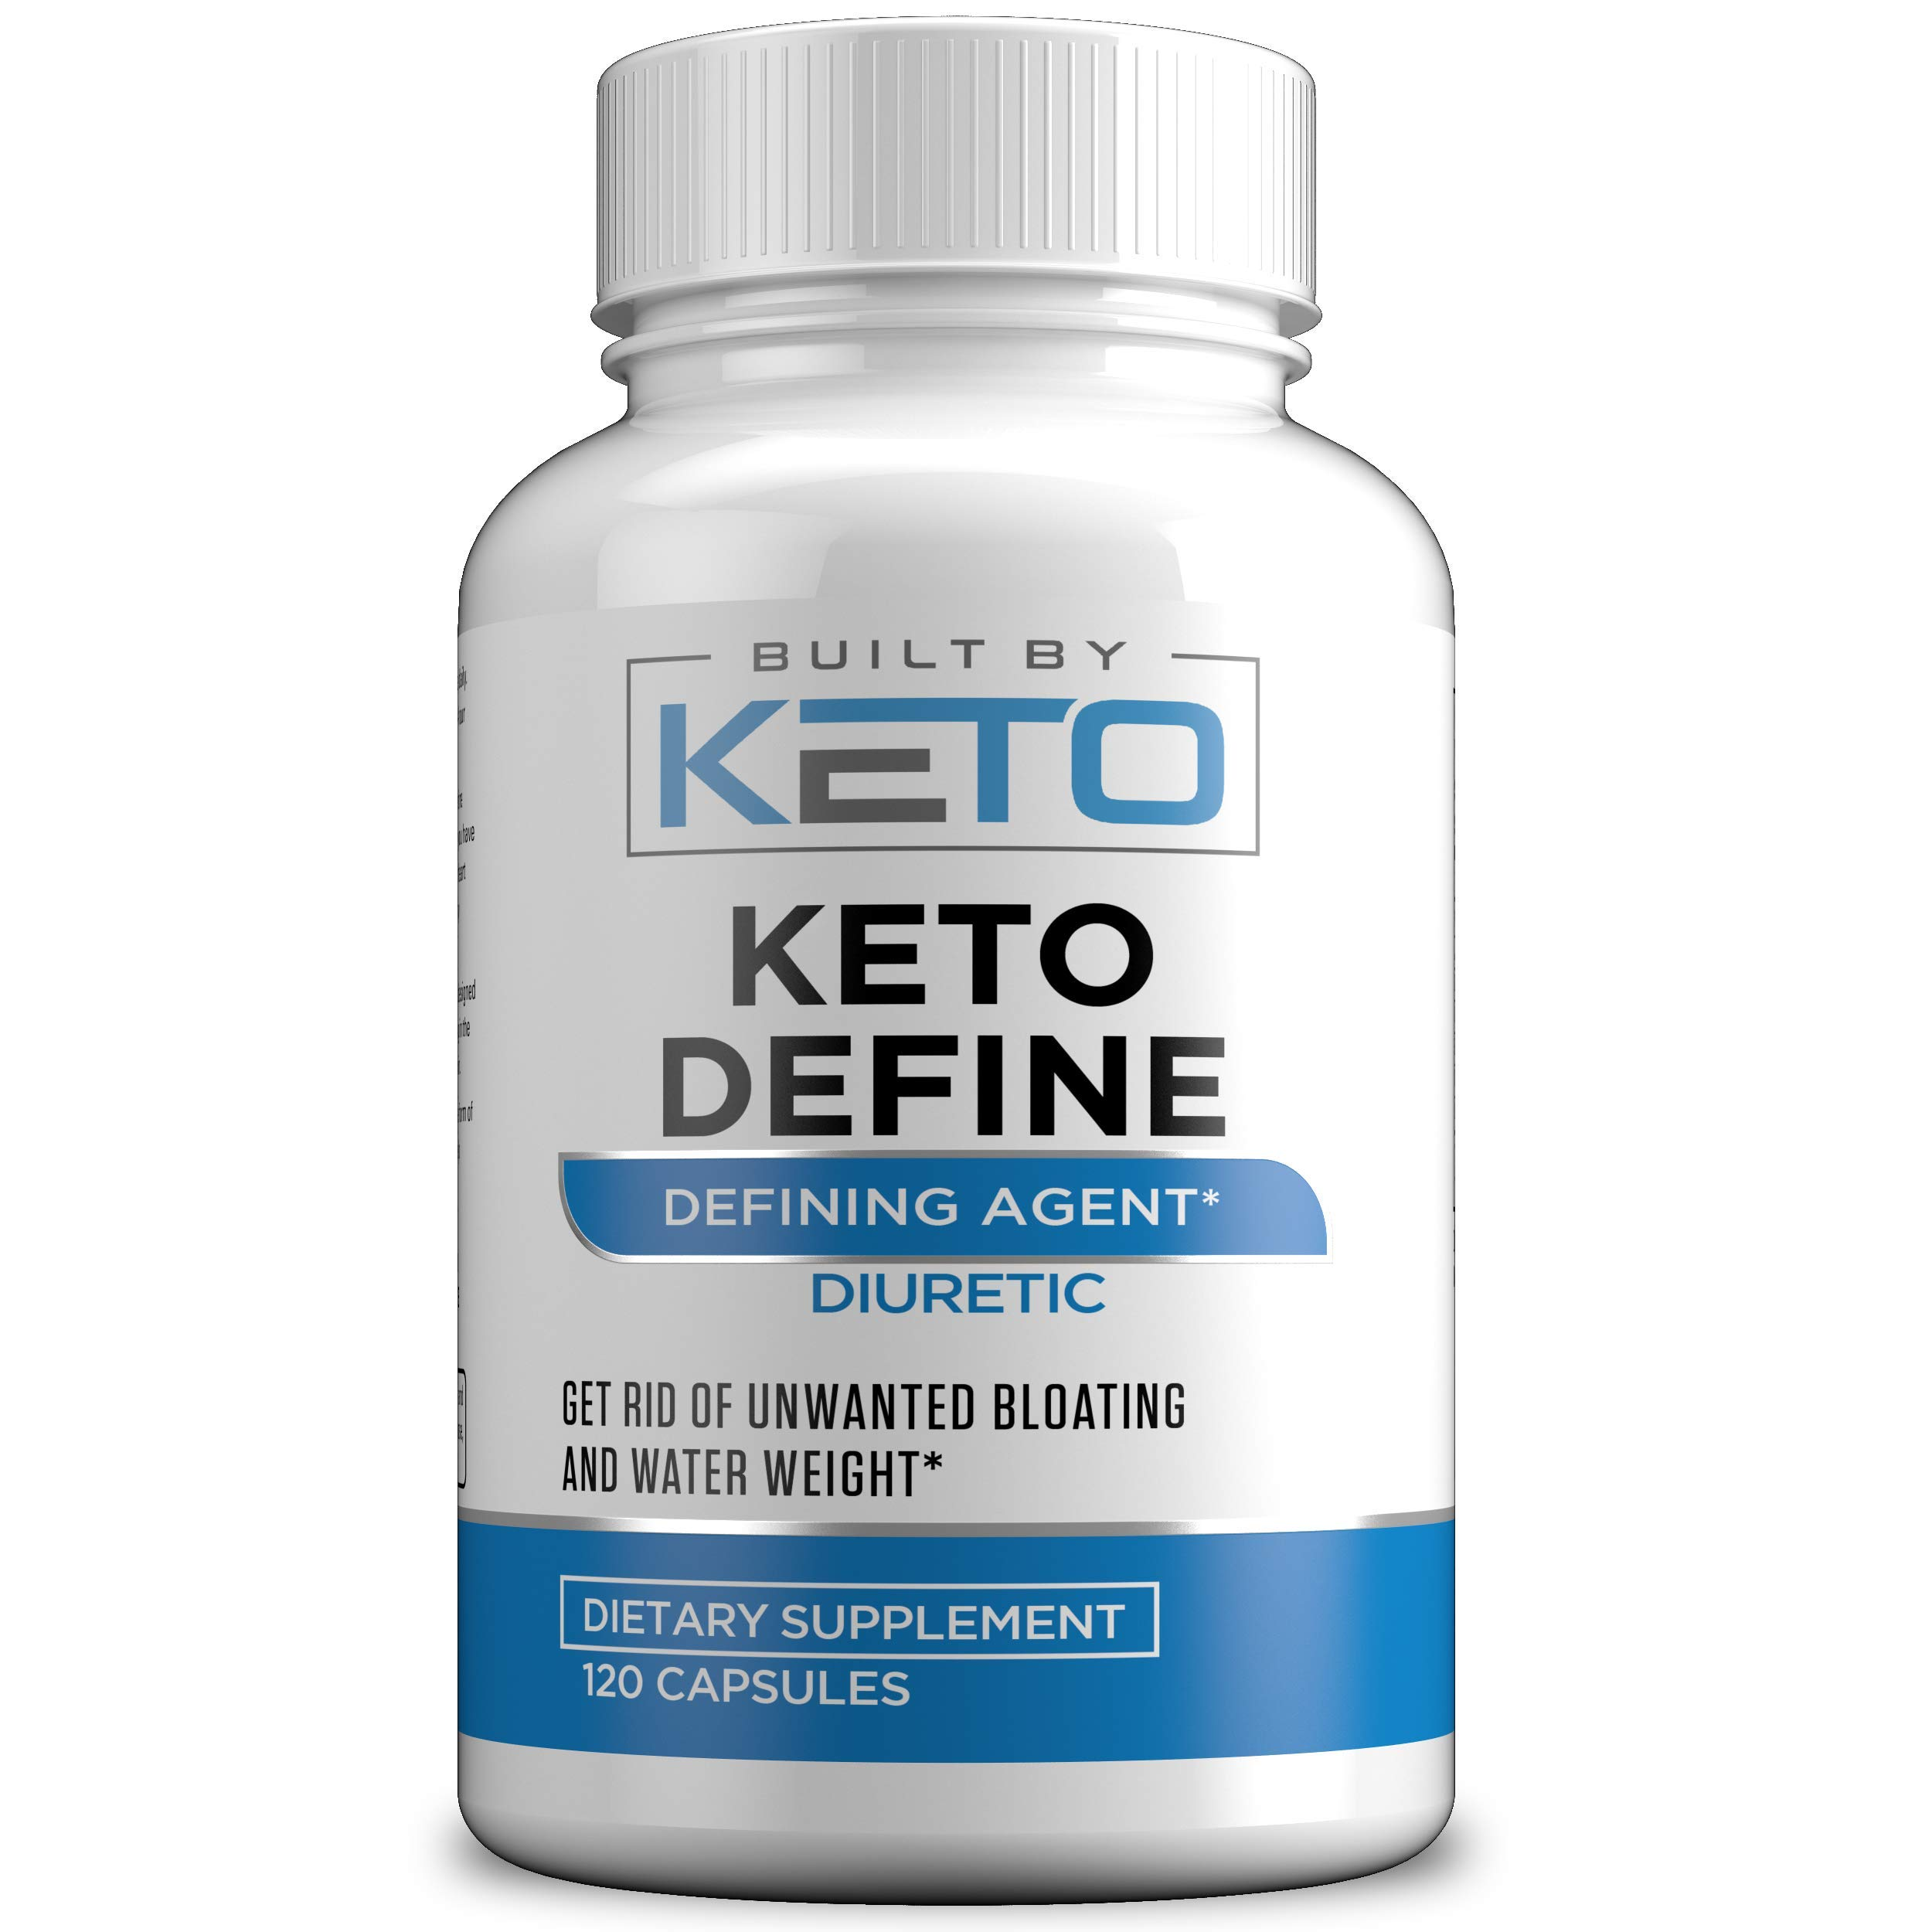 Water Pills Diuretic - Natural Supplement for Water Retention Relief - Keto Define Water Weight Loss Formula Relieves Water Weight Gain, Bloating, Puffiness, and Fatigue - Built By Keto - 120 Capsules